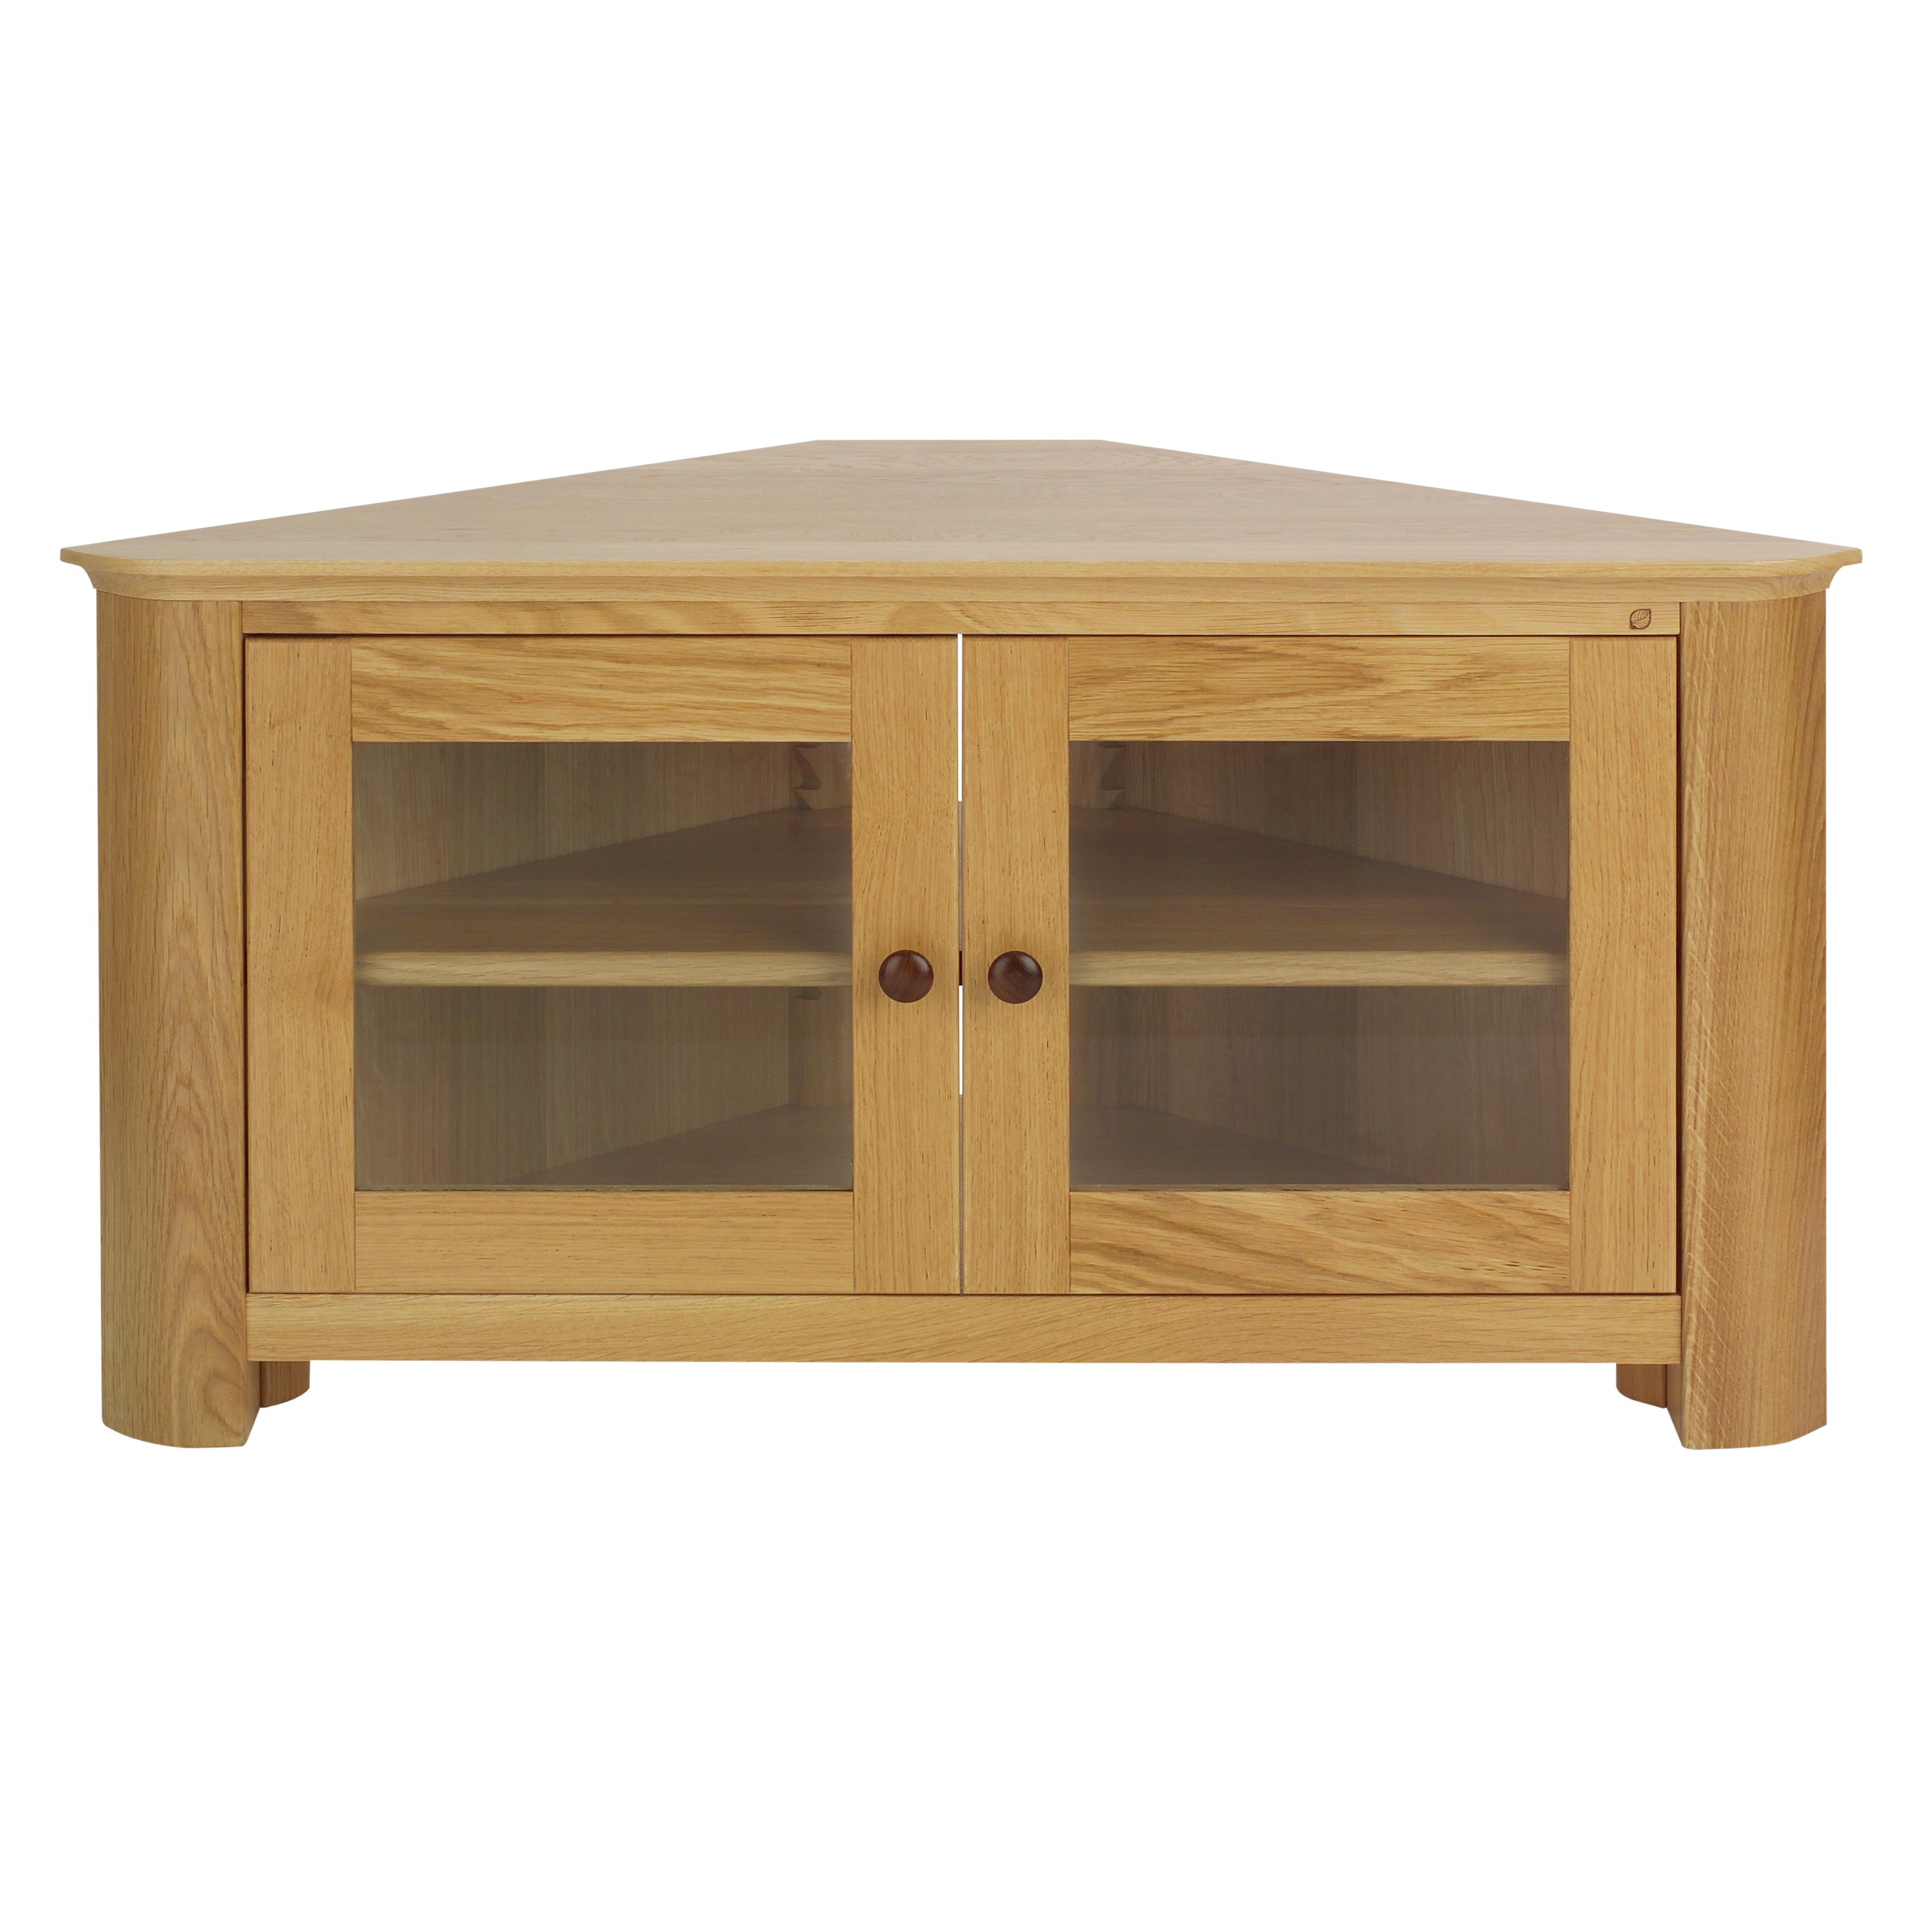 Oak Tv Cabinets With Doors Throughout Most Recently Released Medium Oak Tv Stand Or Corner With Plus Cabinet Together Stands Flat (View 10 of 20)